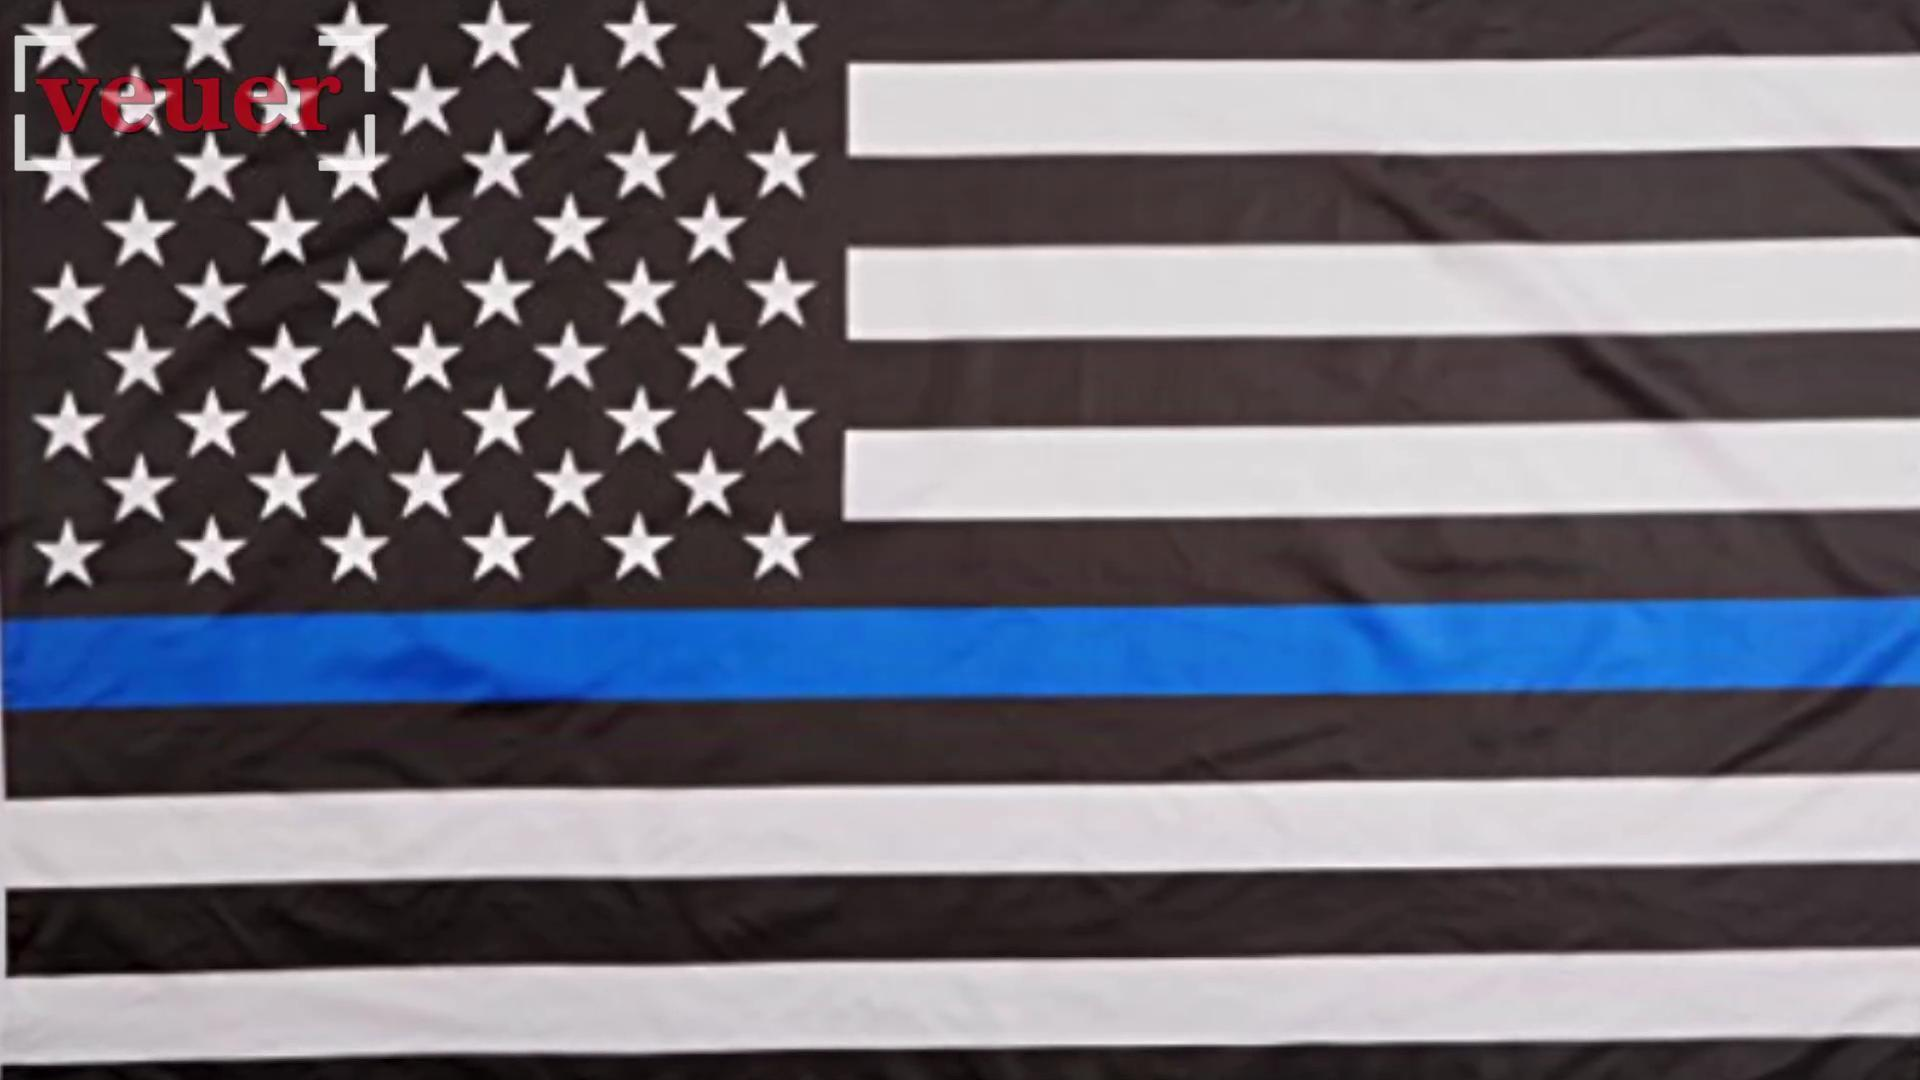 A Blue Lives Matter Flag Deemed Racist Has To Come Down